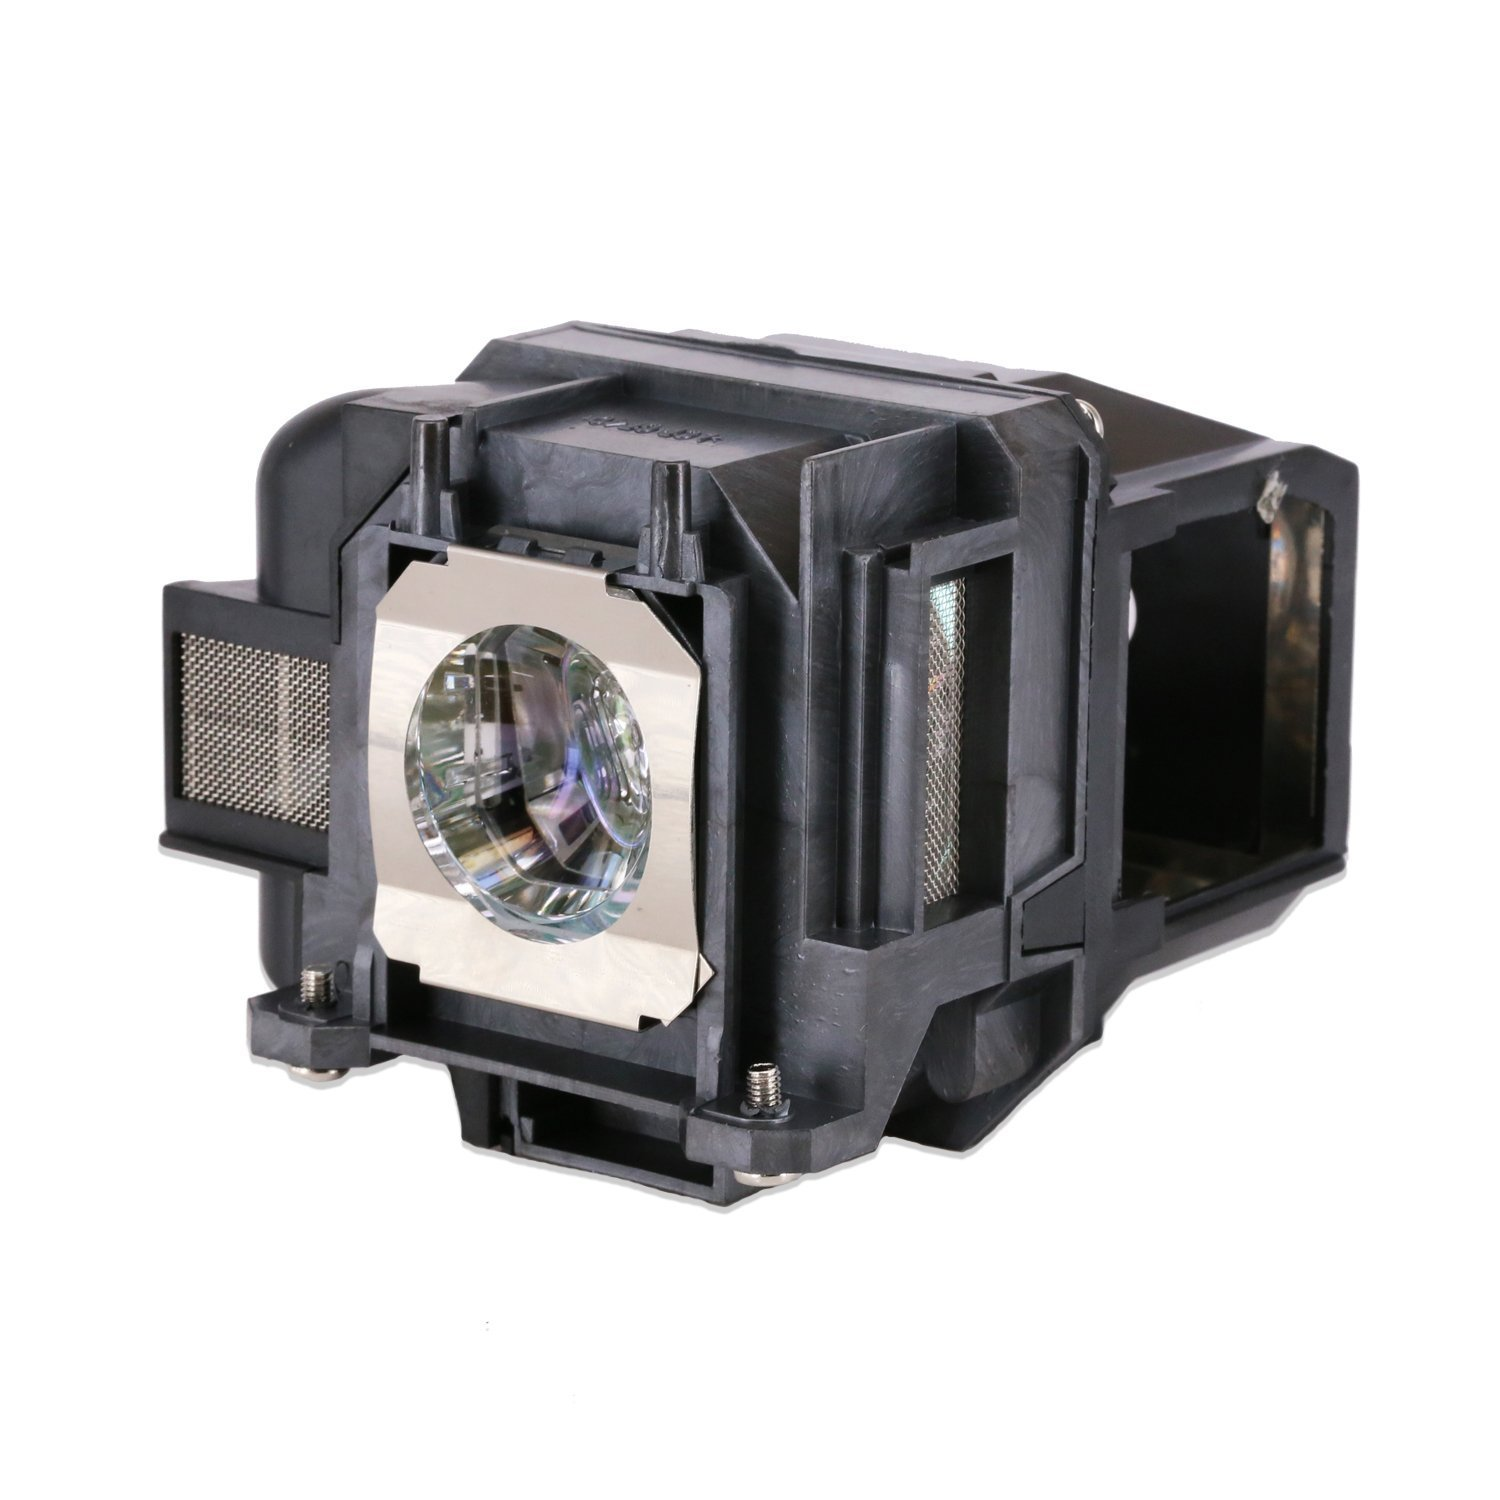 Kingoo Excellent Projector Lamp for EPSON EX5250 Pro EX7240 EX9200 EX9200 Pro H682 H683 H686 H687 H688 H690 H691 H692 H694 PowerLite 1224 PowerLite 1264 Replacement Projector Lamp Bulb with Housing